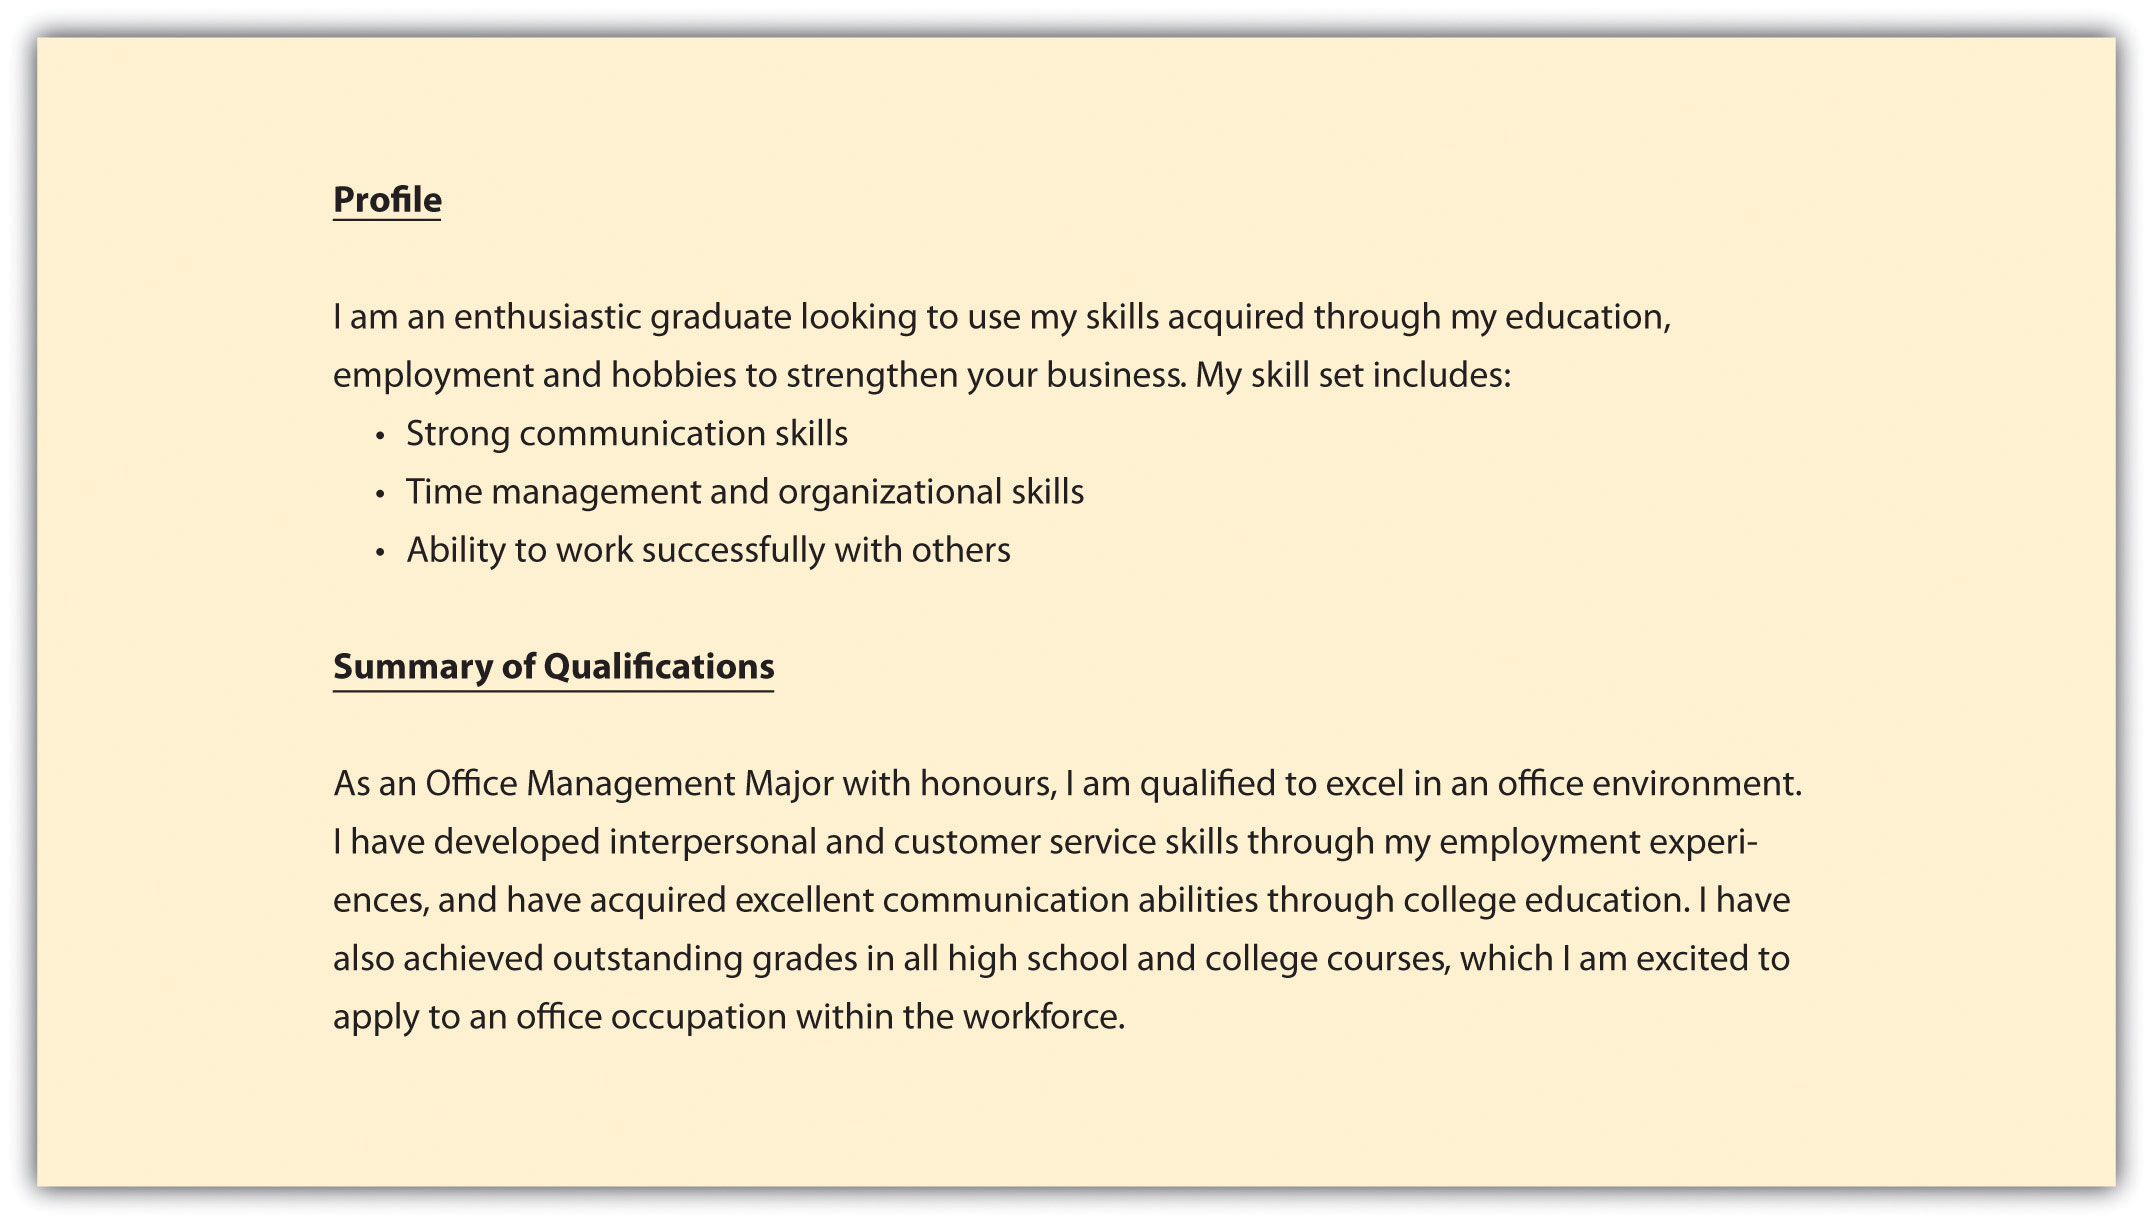 Summary Of Qualifications On Your Resume